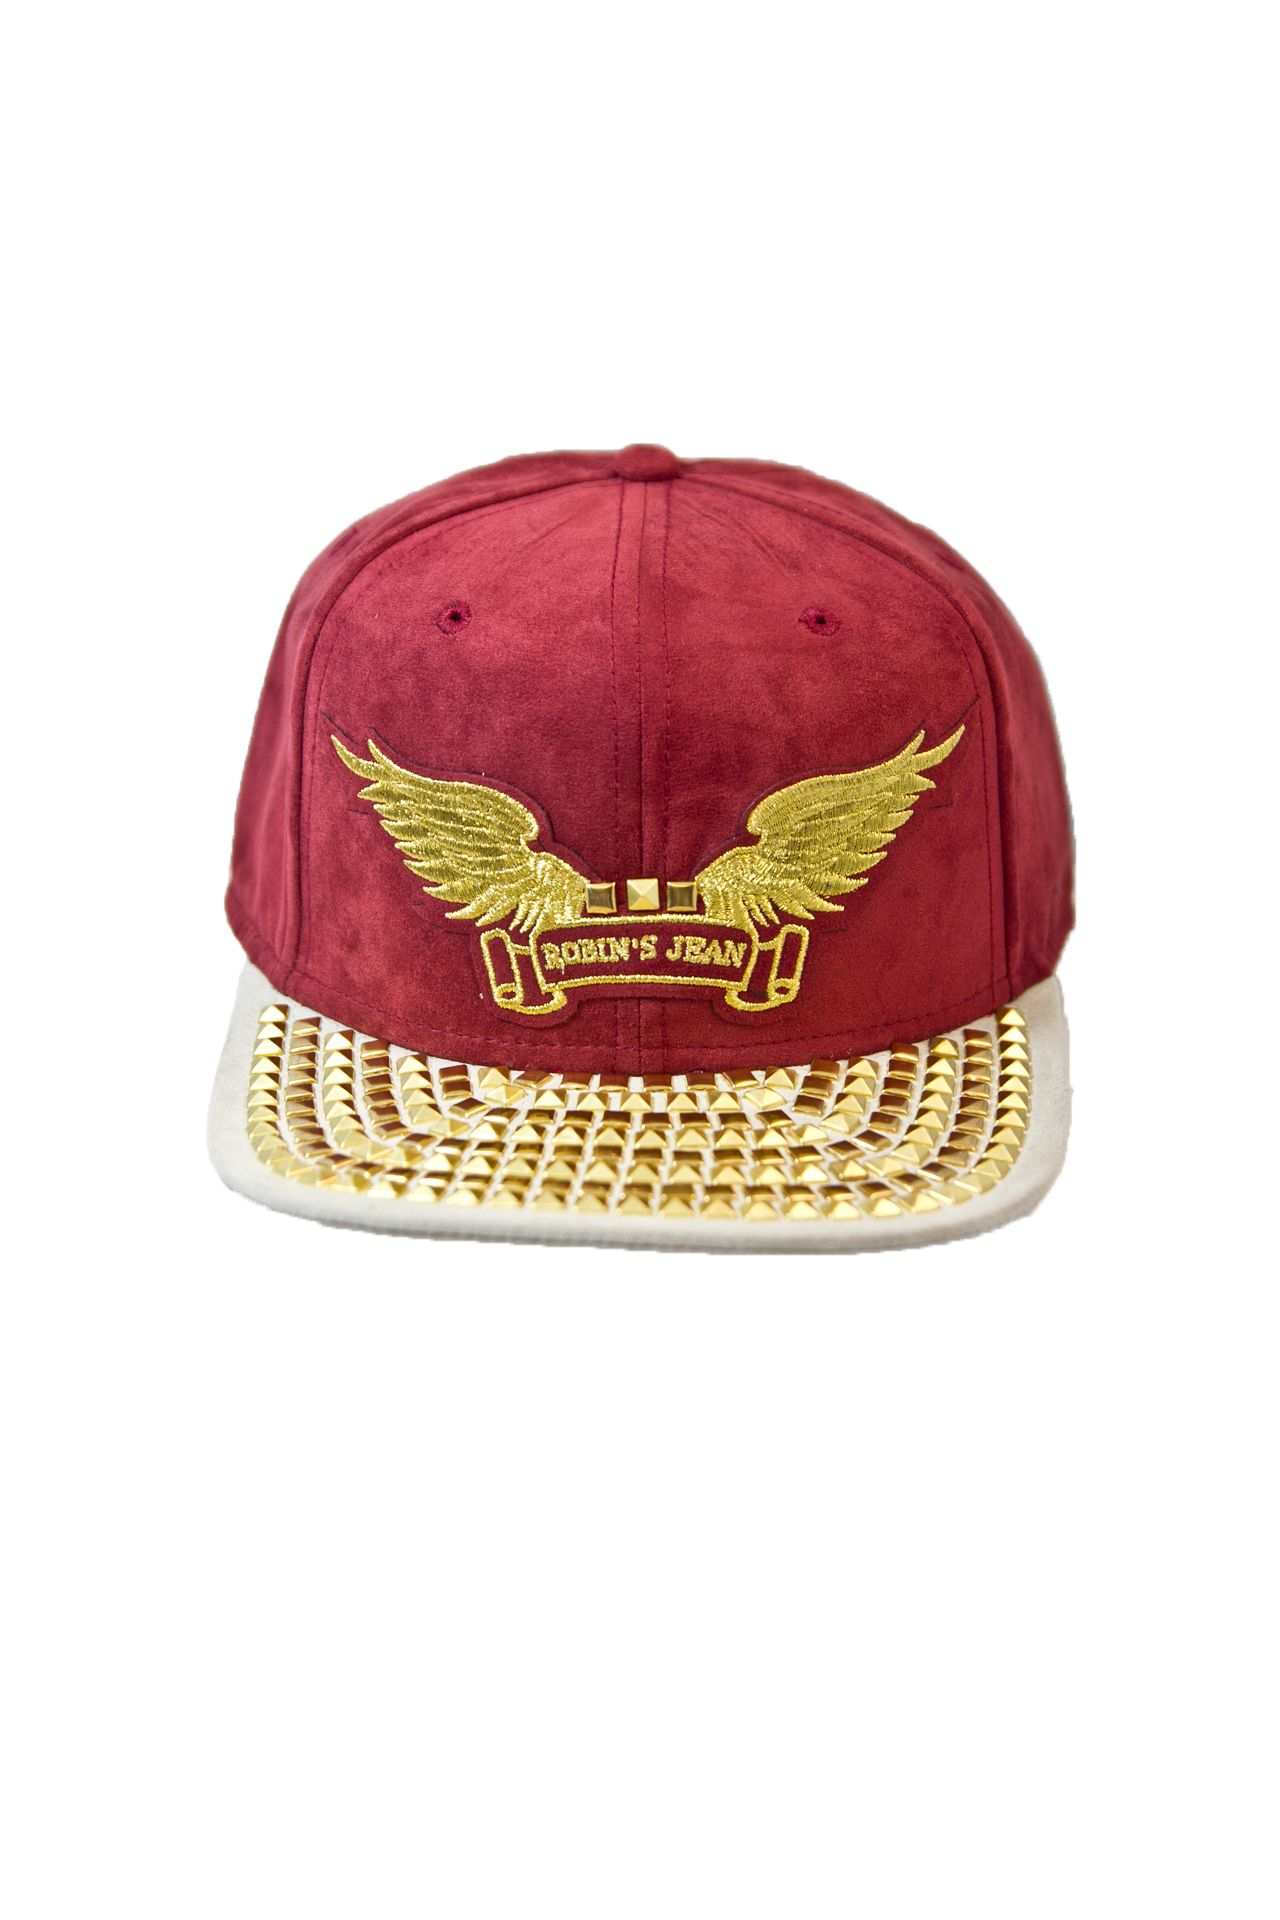 BURGUNDY SUEDE CAP 2 TONES WITH GOLD PYRAMIDS